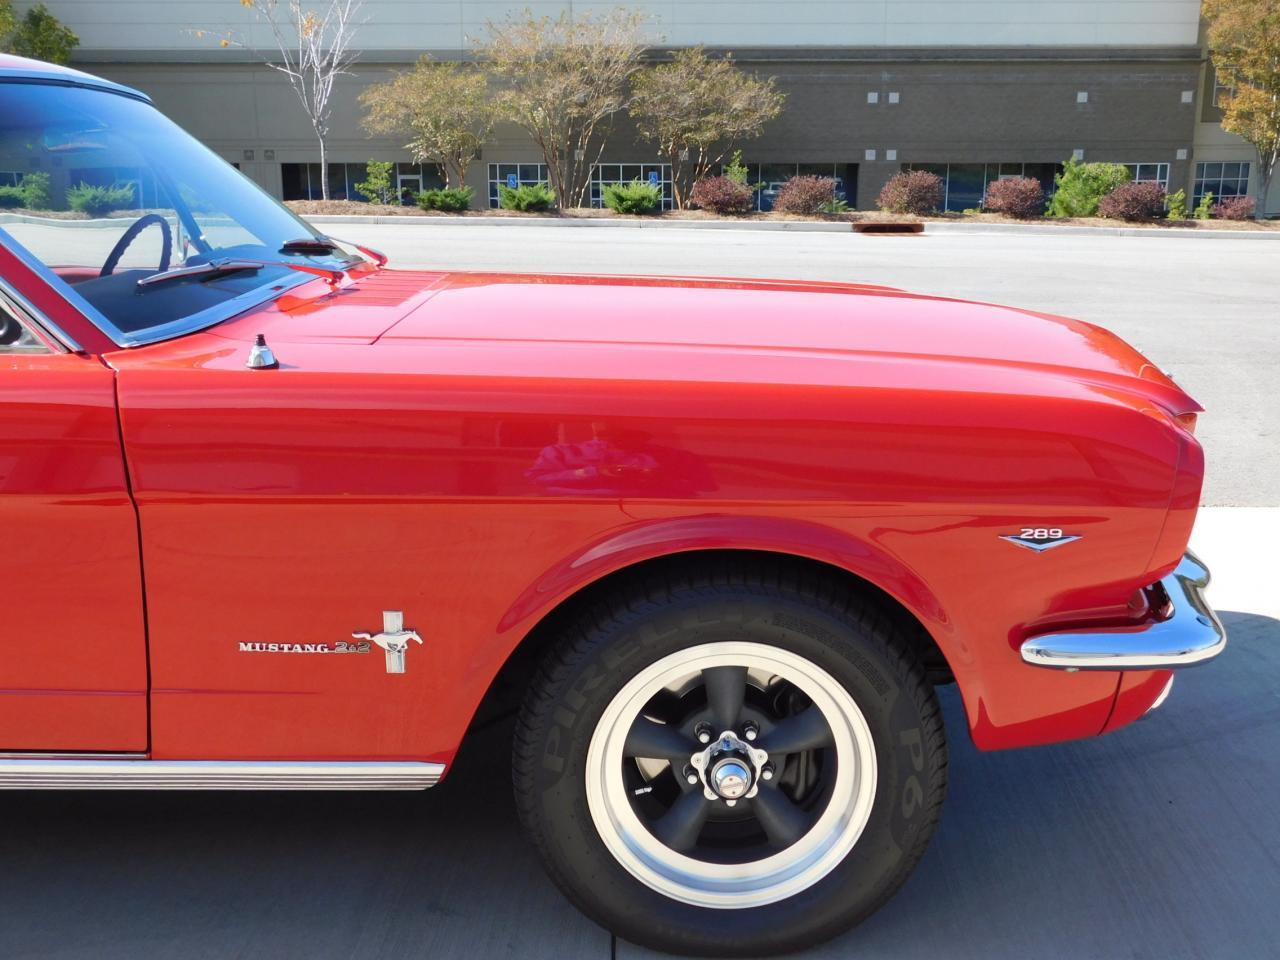 Large Picture of Classic 1966 Mustang located in Georgia - $46,995.00 - M8OT